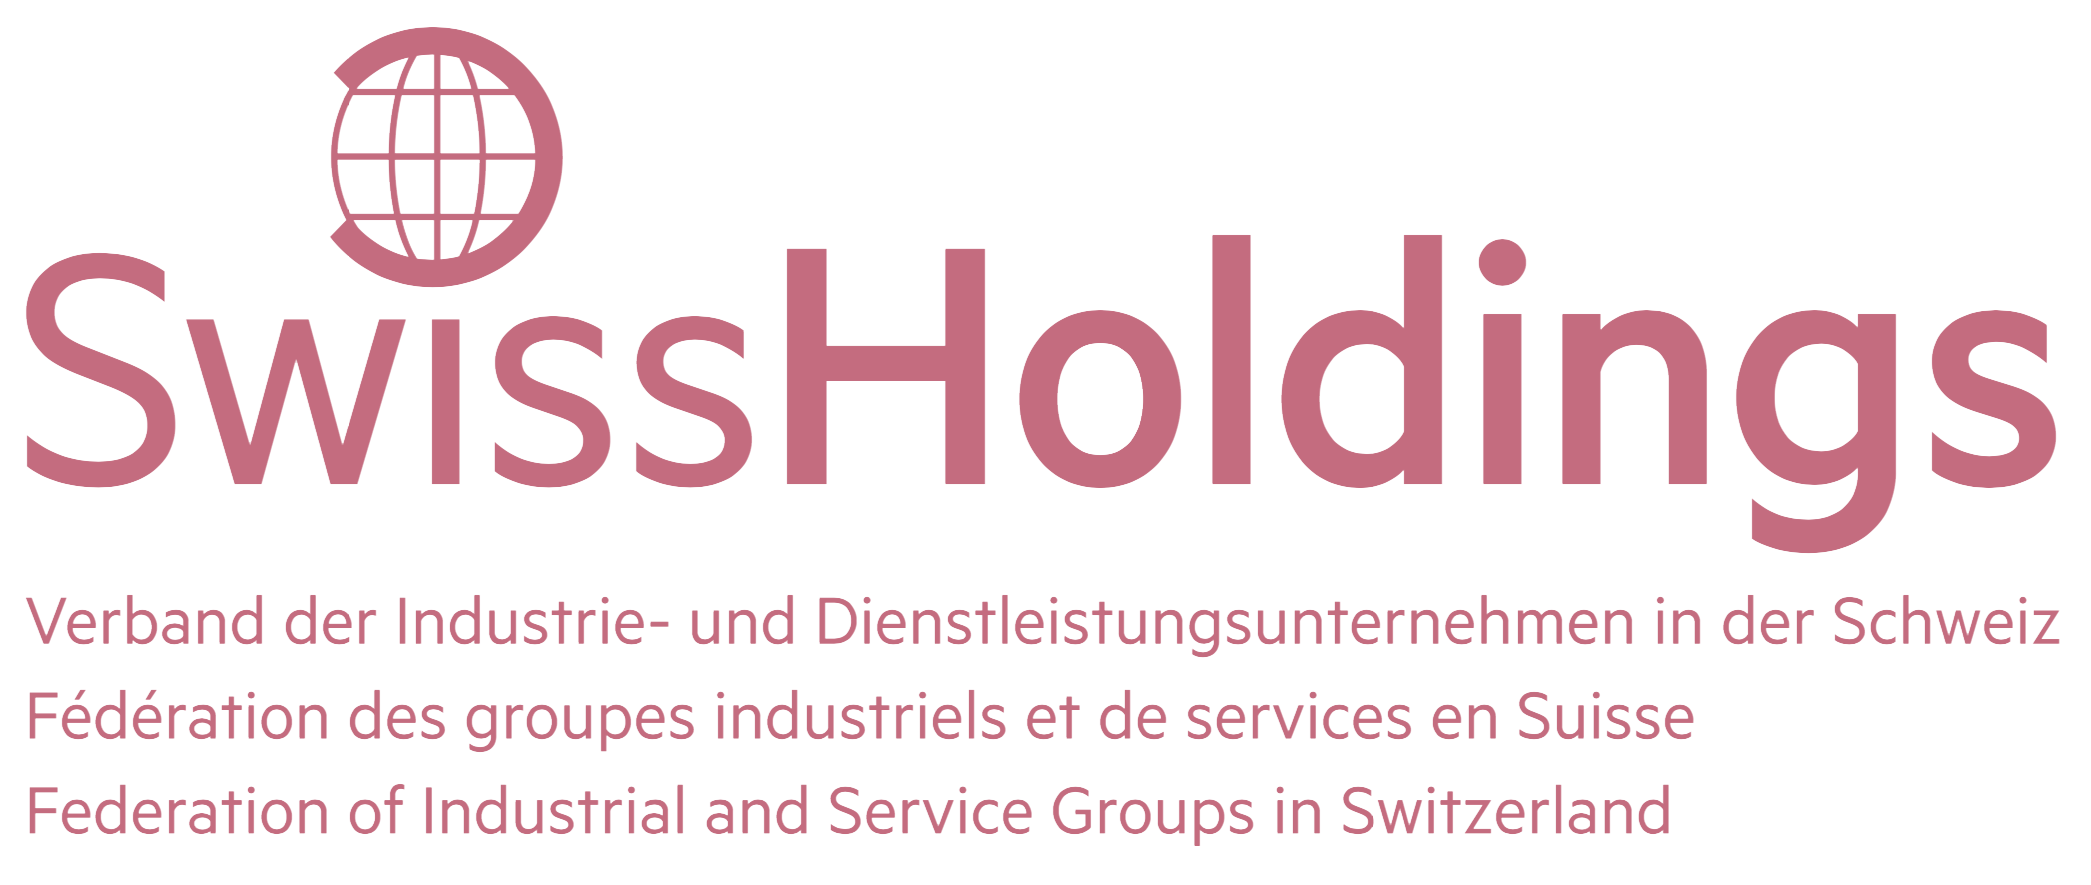 Swissholdings Extranet